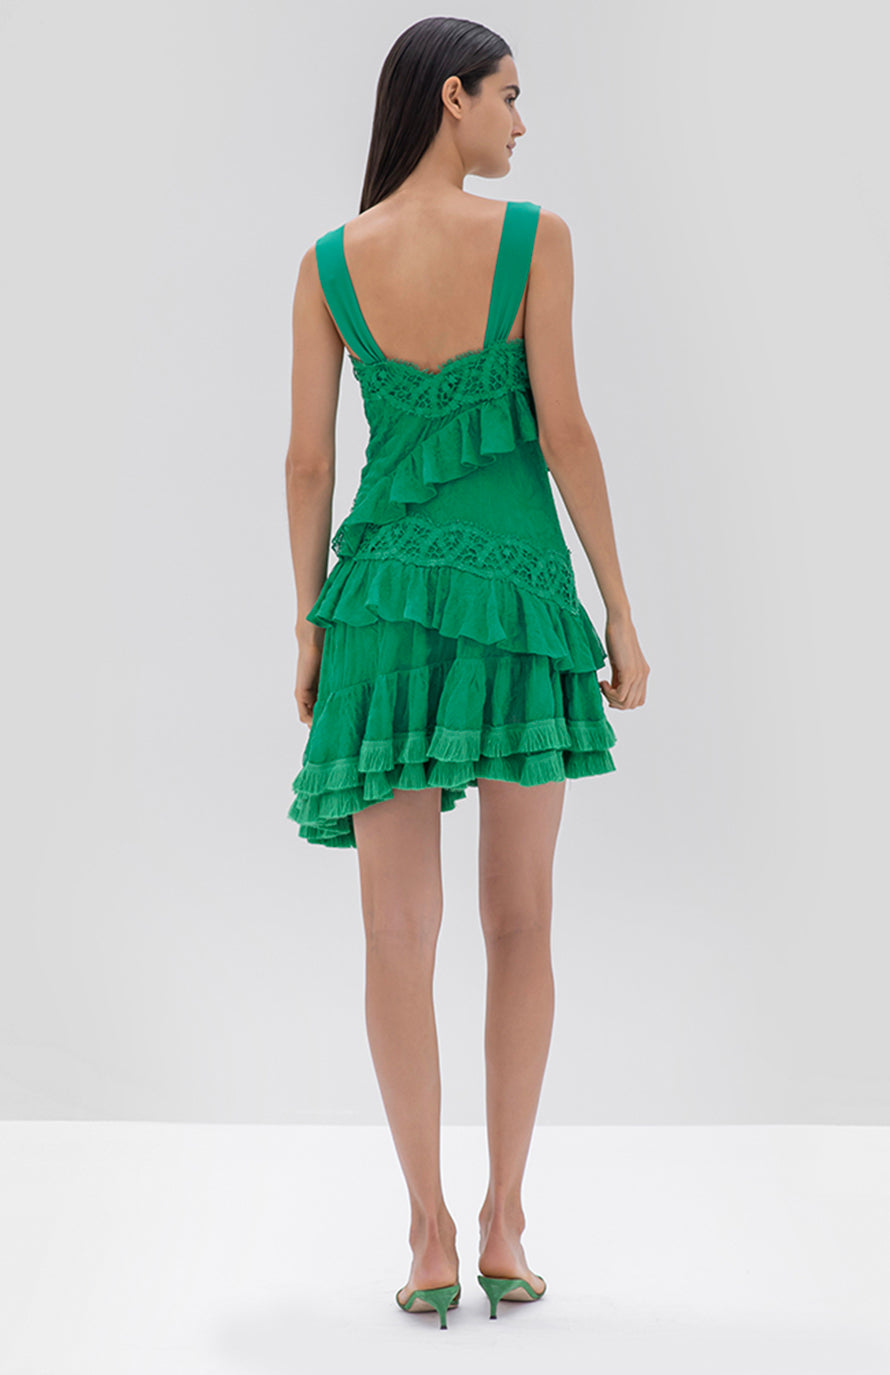 Alexis Lakshmi Dress Emerald Green - Rear View